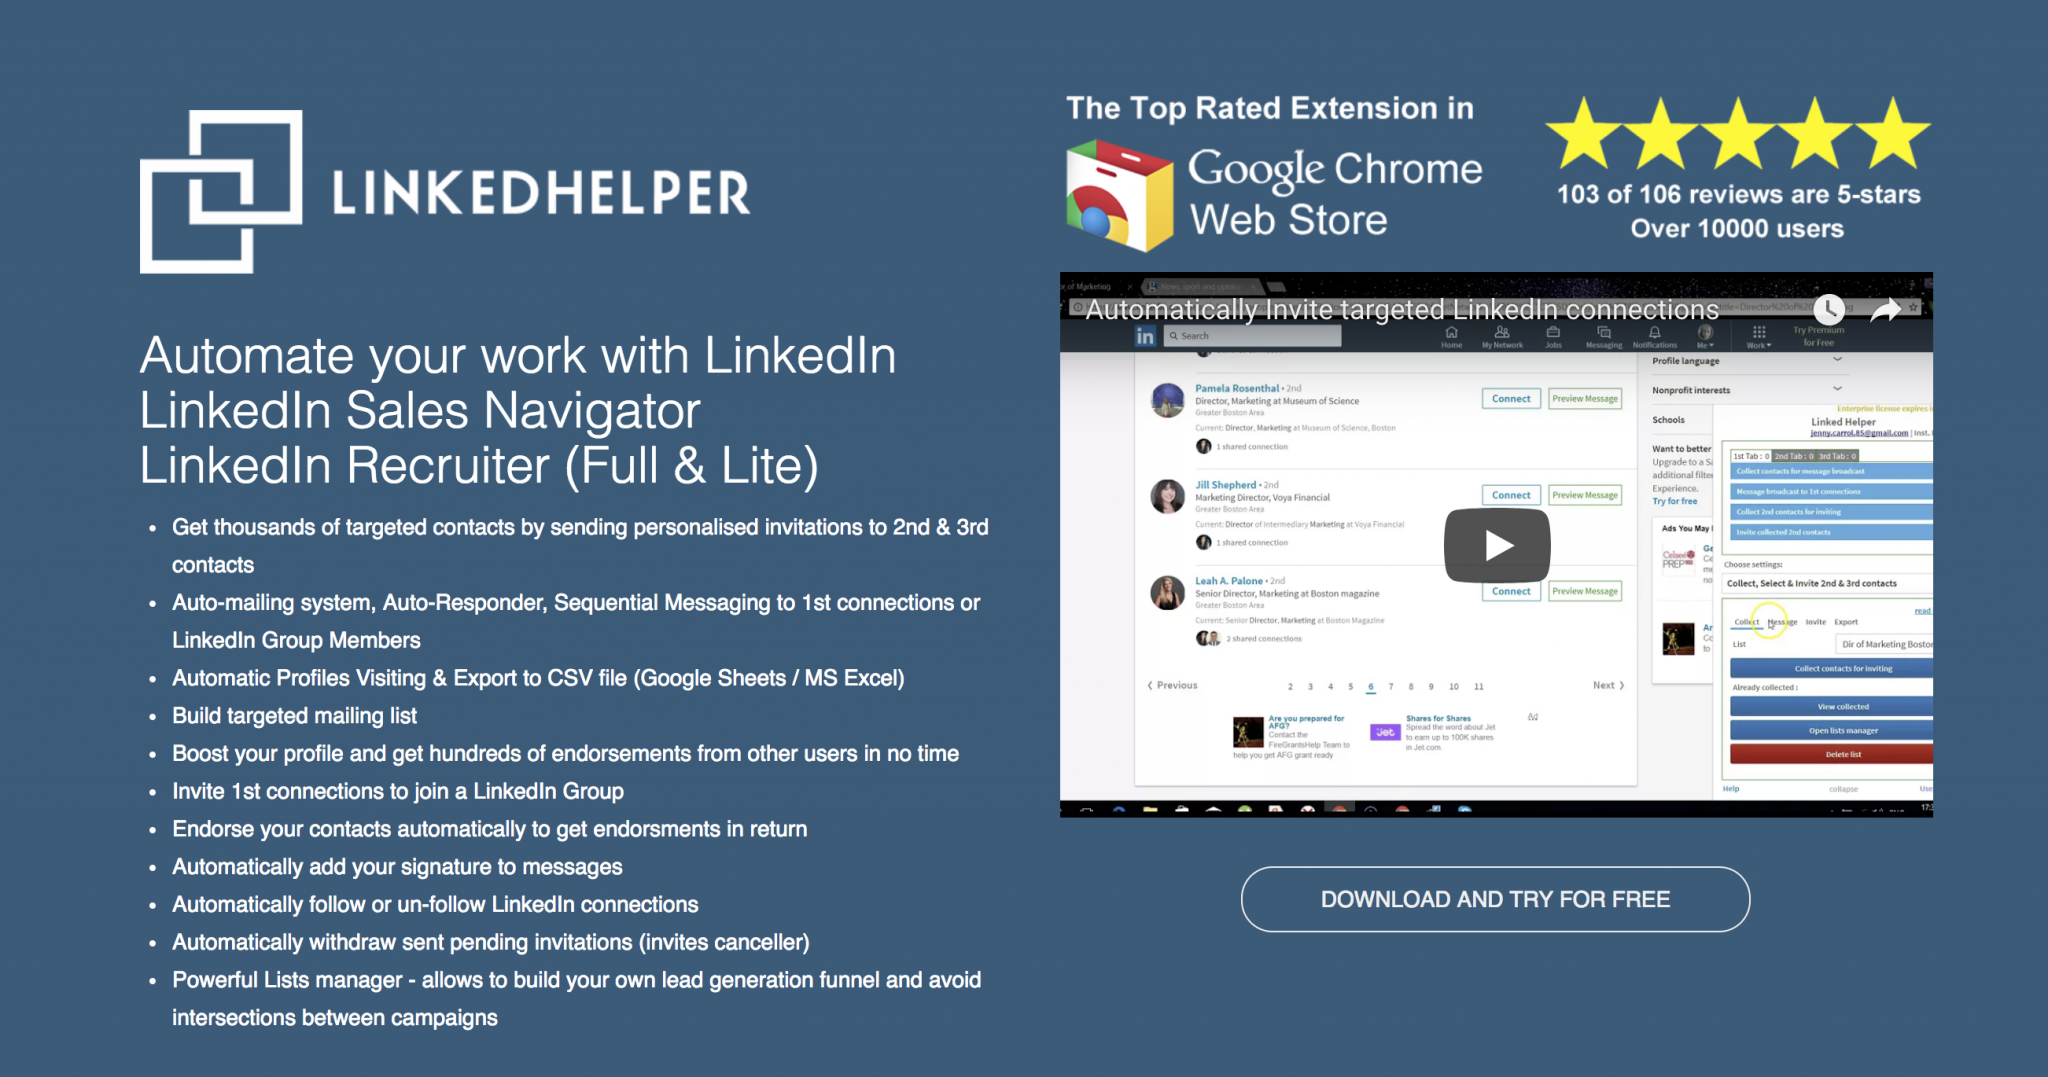 Linkedin Automation Tools, LinkedHelper Review |